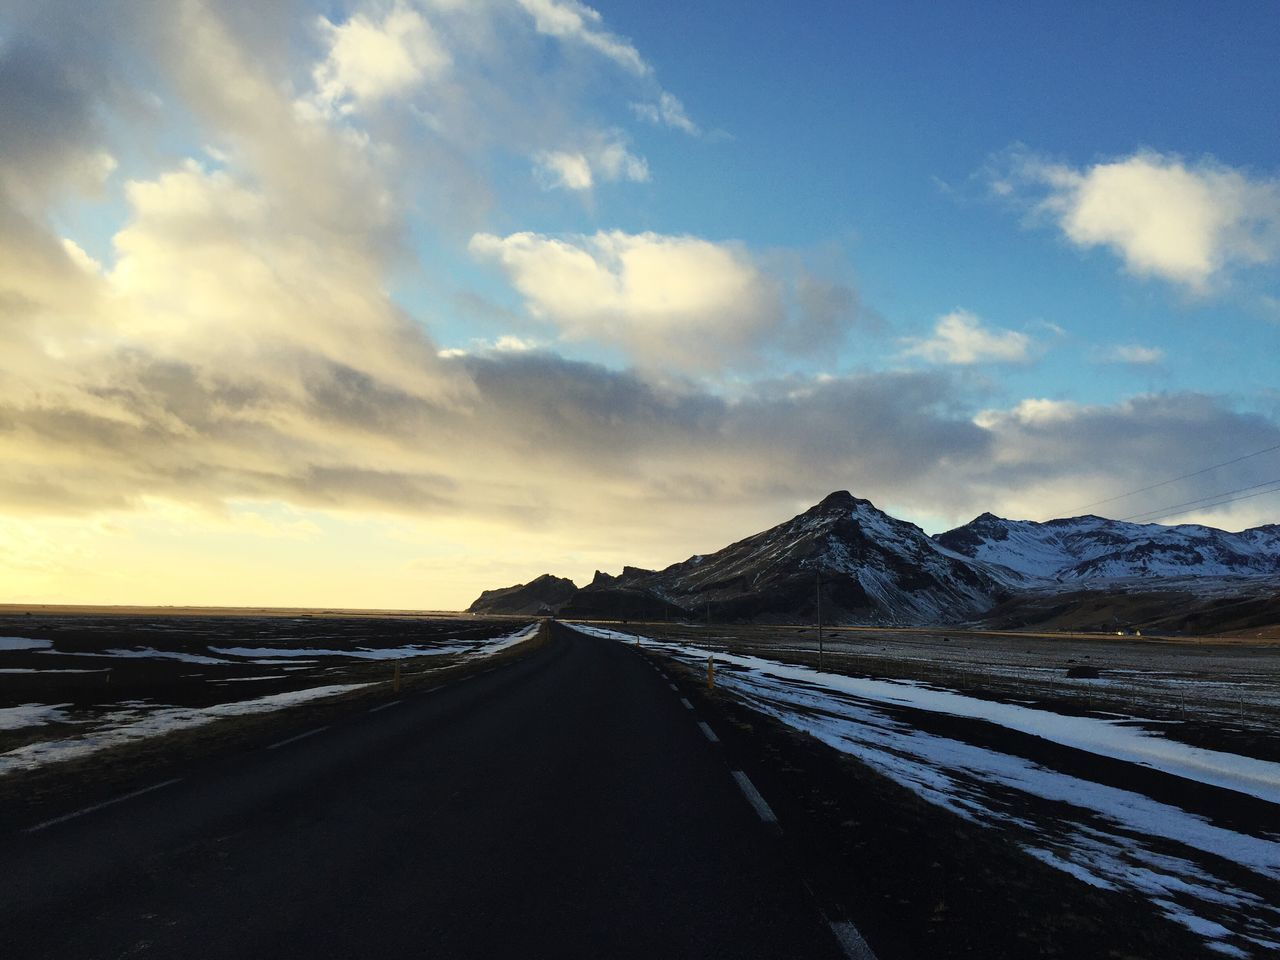 Scenics Road Sky Tranquil Scene Landscape Nature Tranquility Beauty In Nature Mountain Remote Non-urban Scene Outdoors Cold Temperature Cloud - Sky Snow No People Winter Day